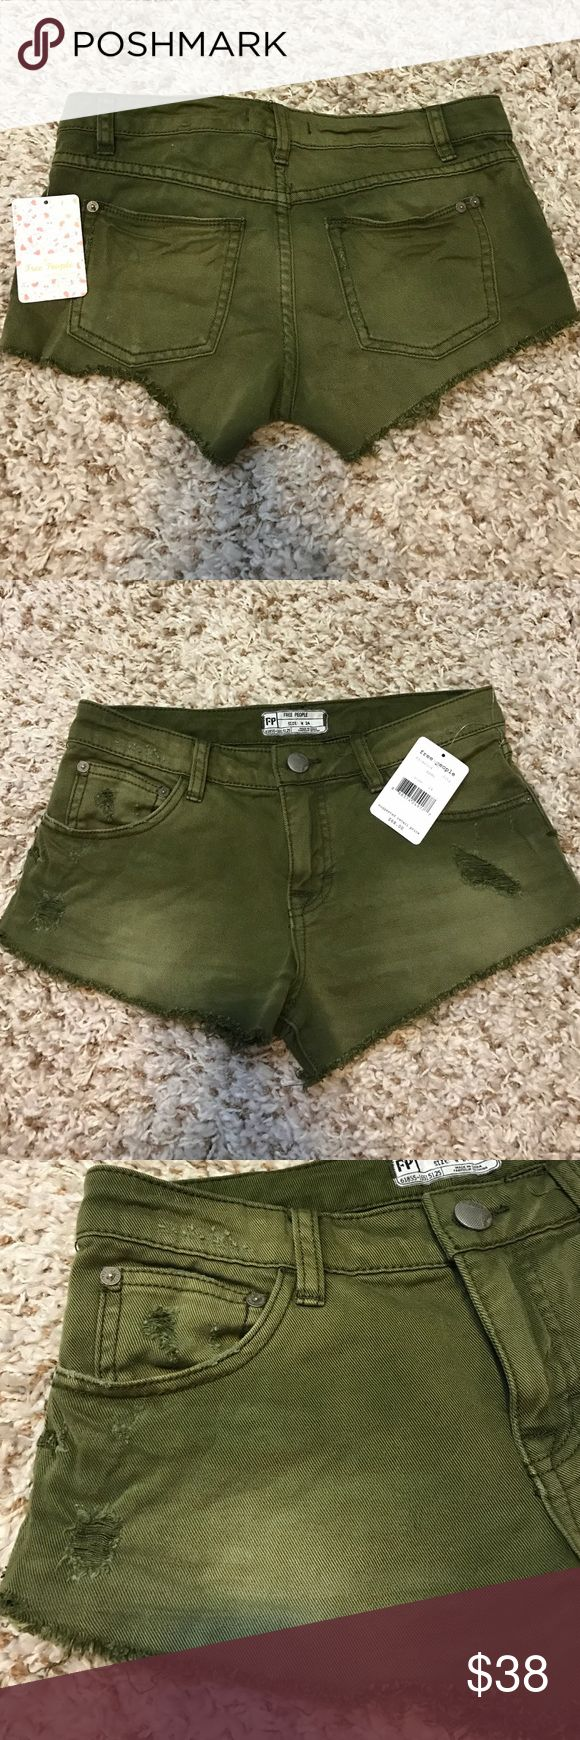 Free people Army shorts distressed NWT $68 Free People army green distressed mini shorts size24. 5 pocket style. Free People Shorts Jean Shorts